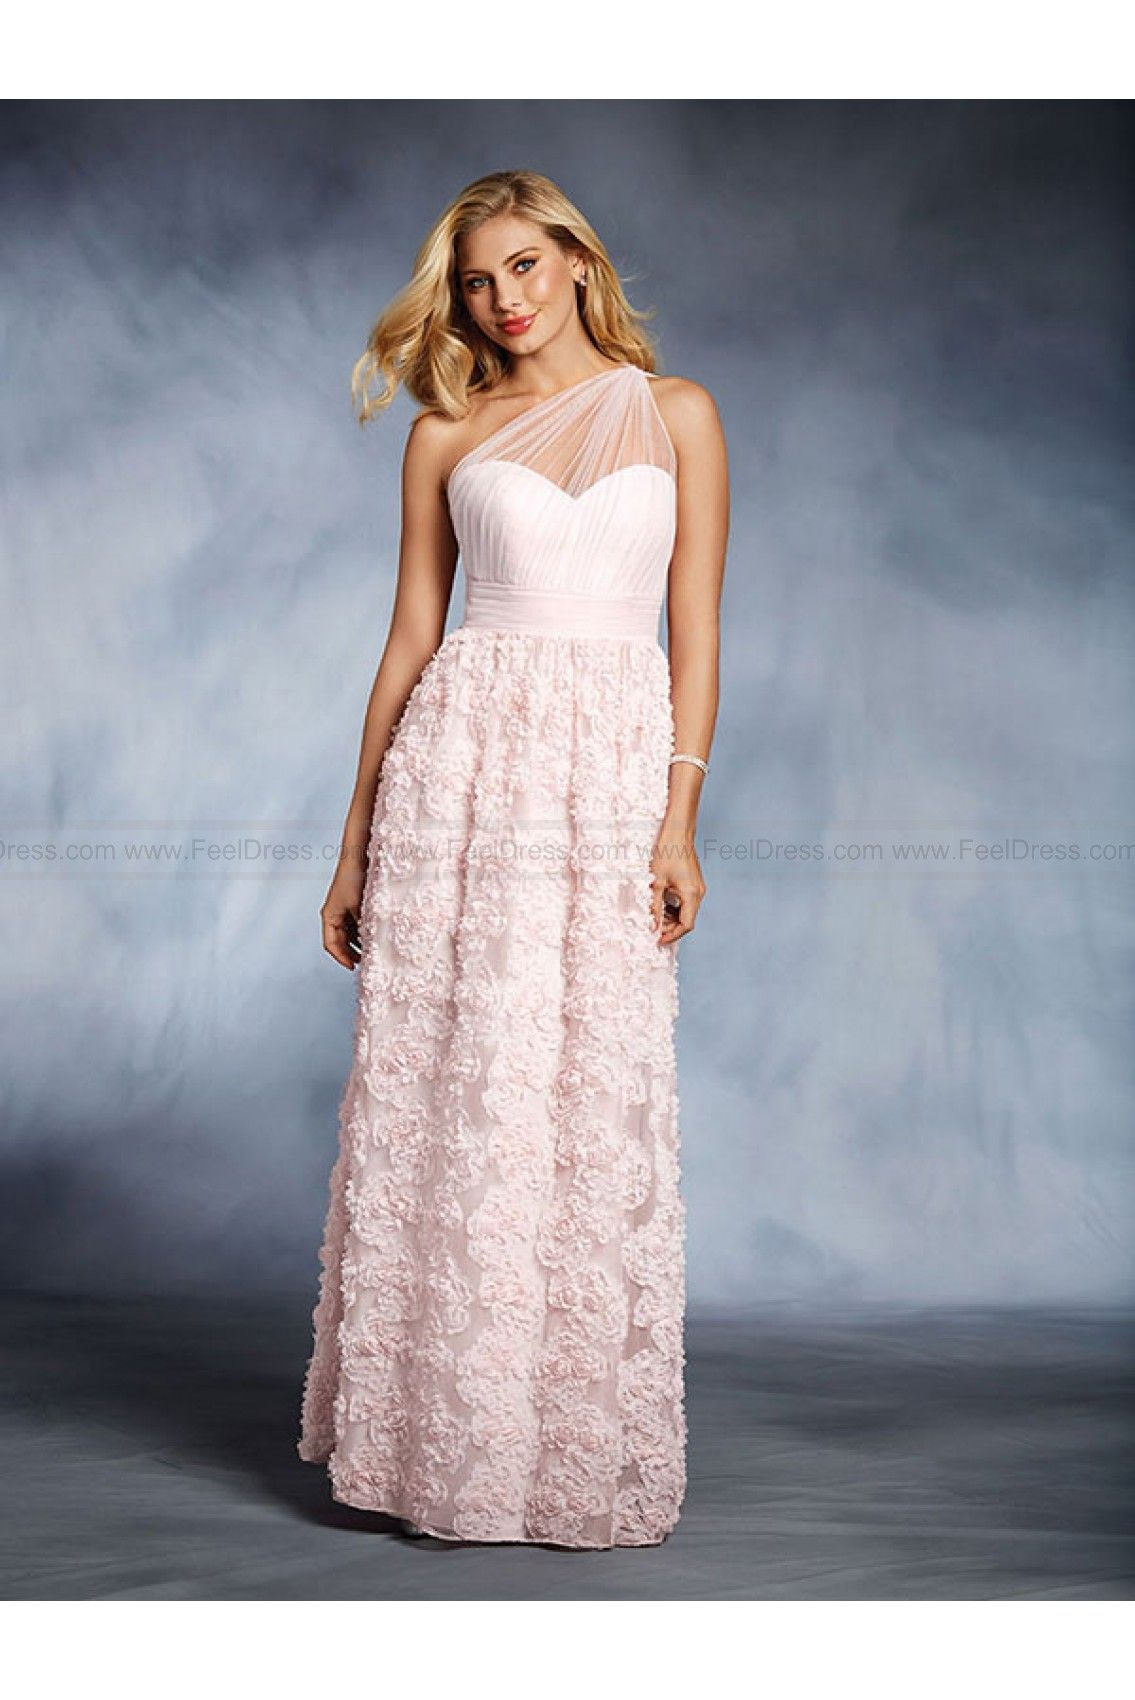 Alfred angelo bridesmaid dress style 547l new alfred angelo alfred angelo bridesmaid dress style 547l new ombrellifo Gallery